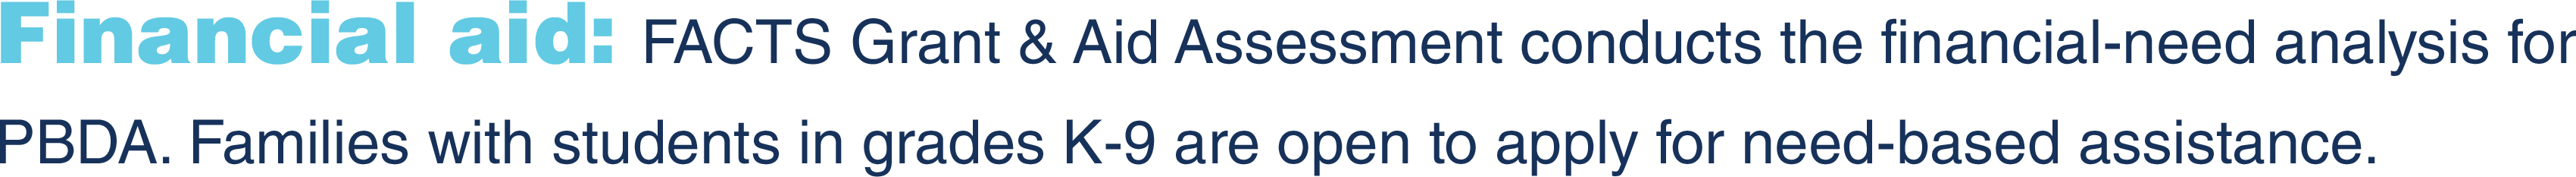 Financial aid: FACTS Grant & Aid Assessment conducts the financial-need analysis for PBDA. Families with students in grades K-9 are open to apply for need-based assistance.